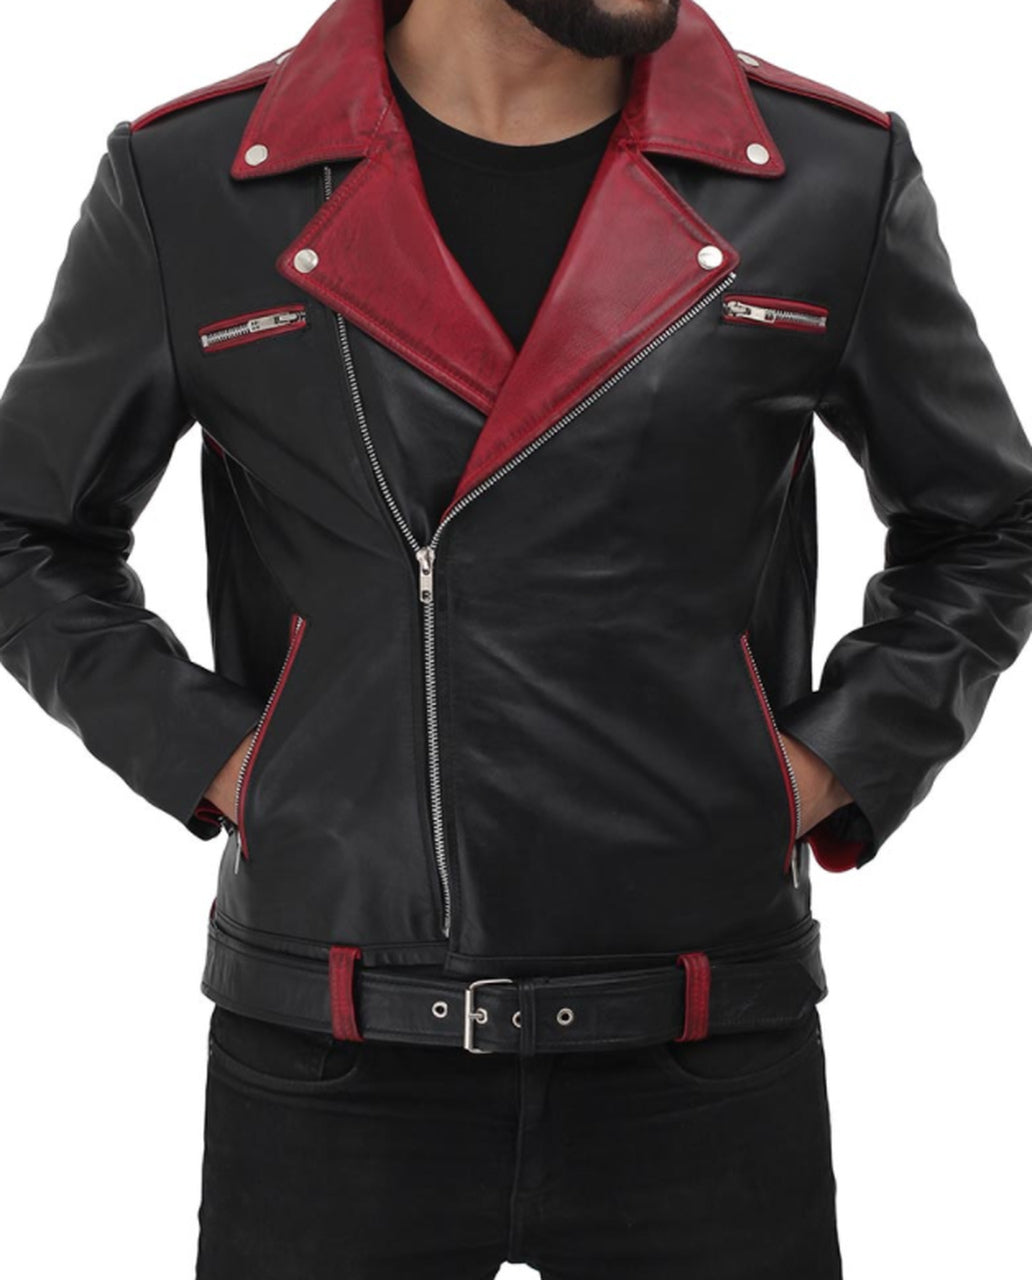 Unique Style Moto Genuine Sheep leather jacket  in Red design and stylish zip